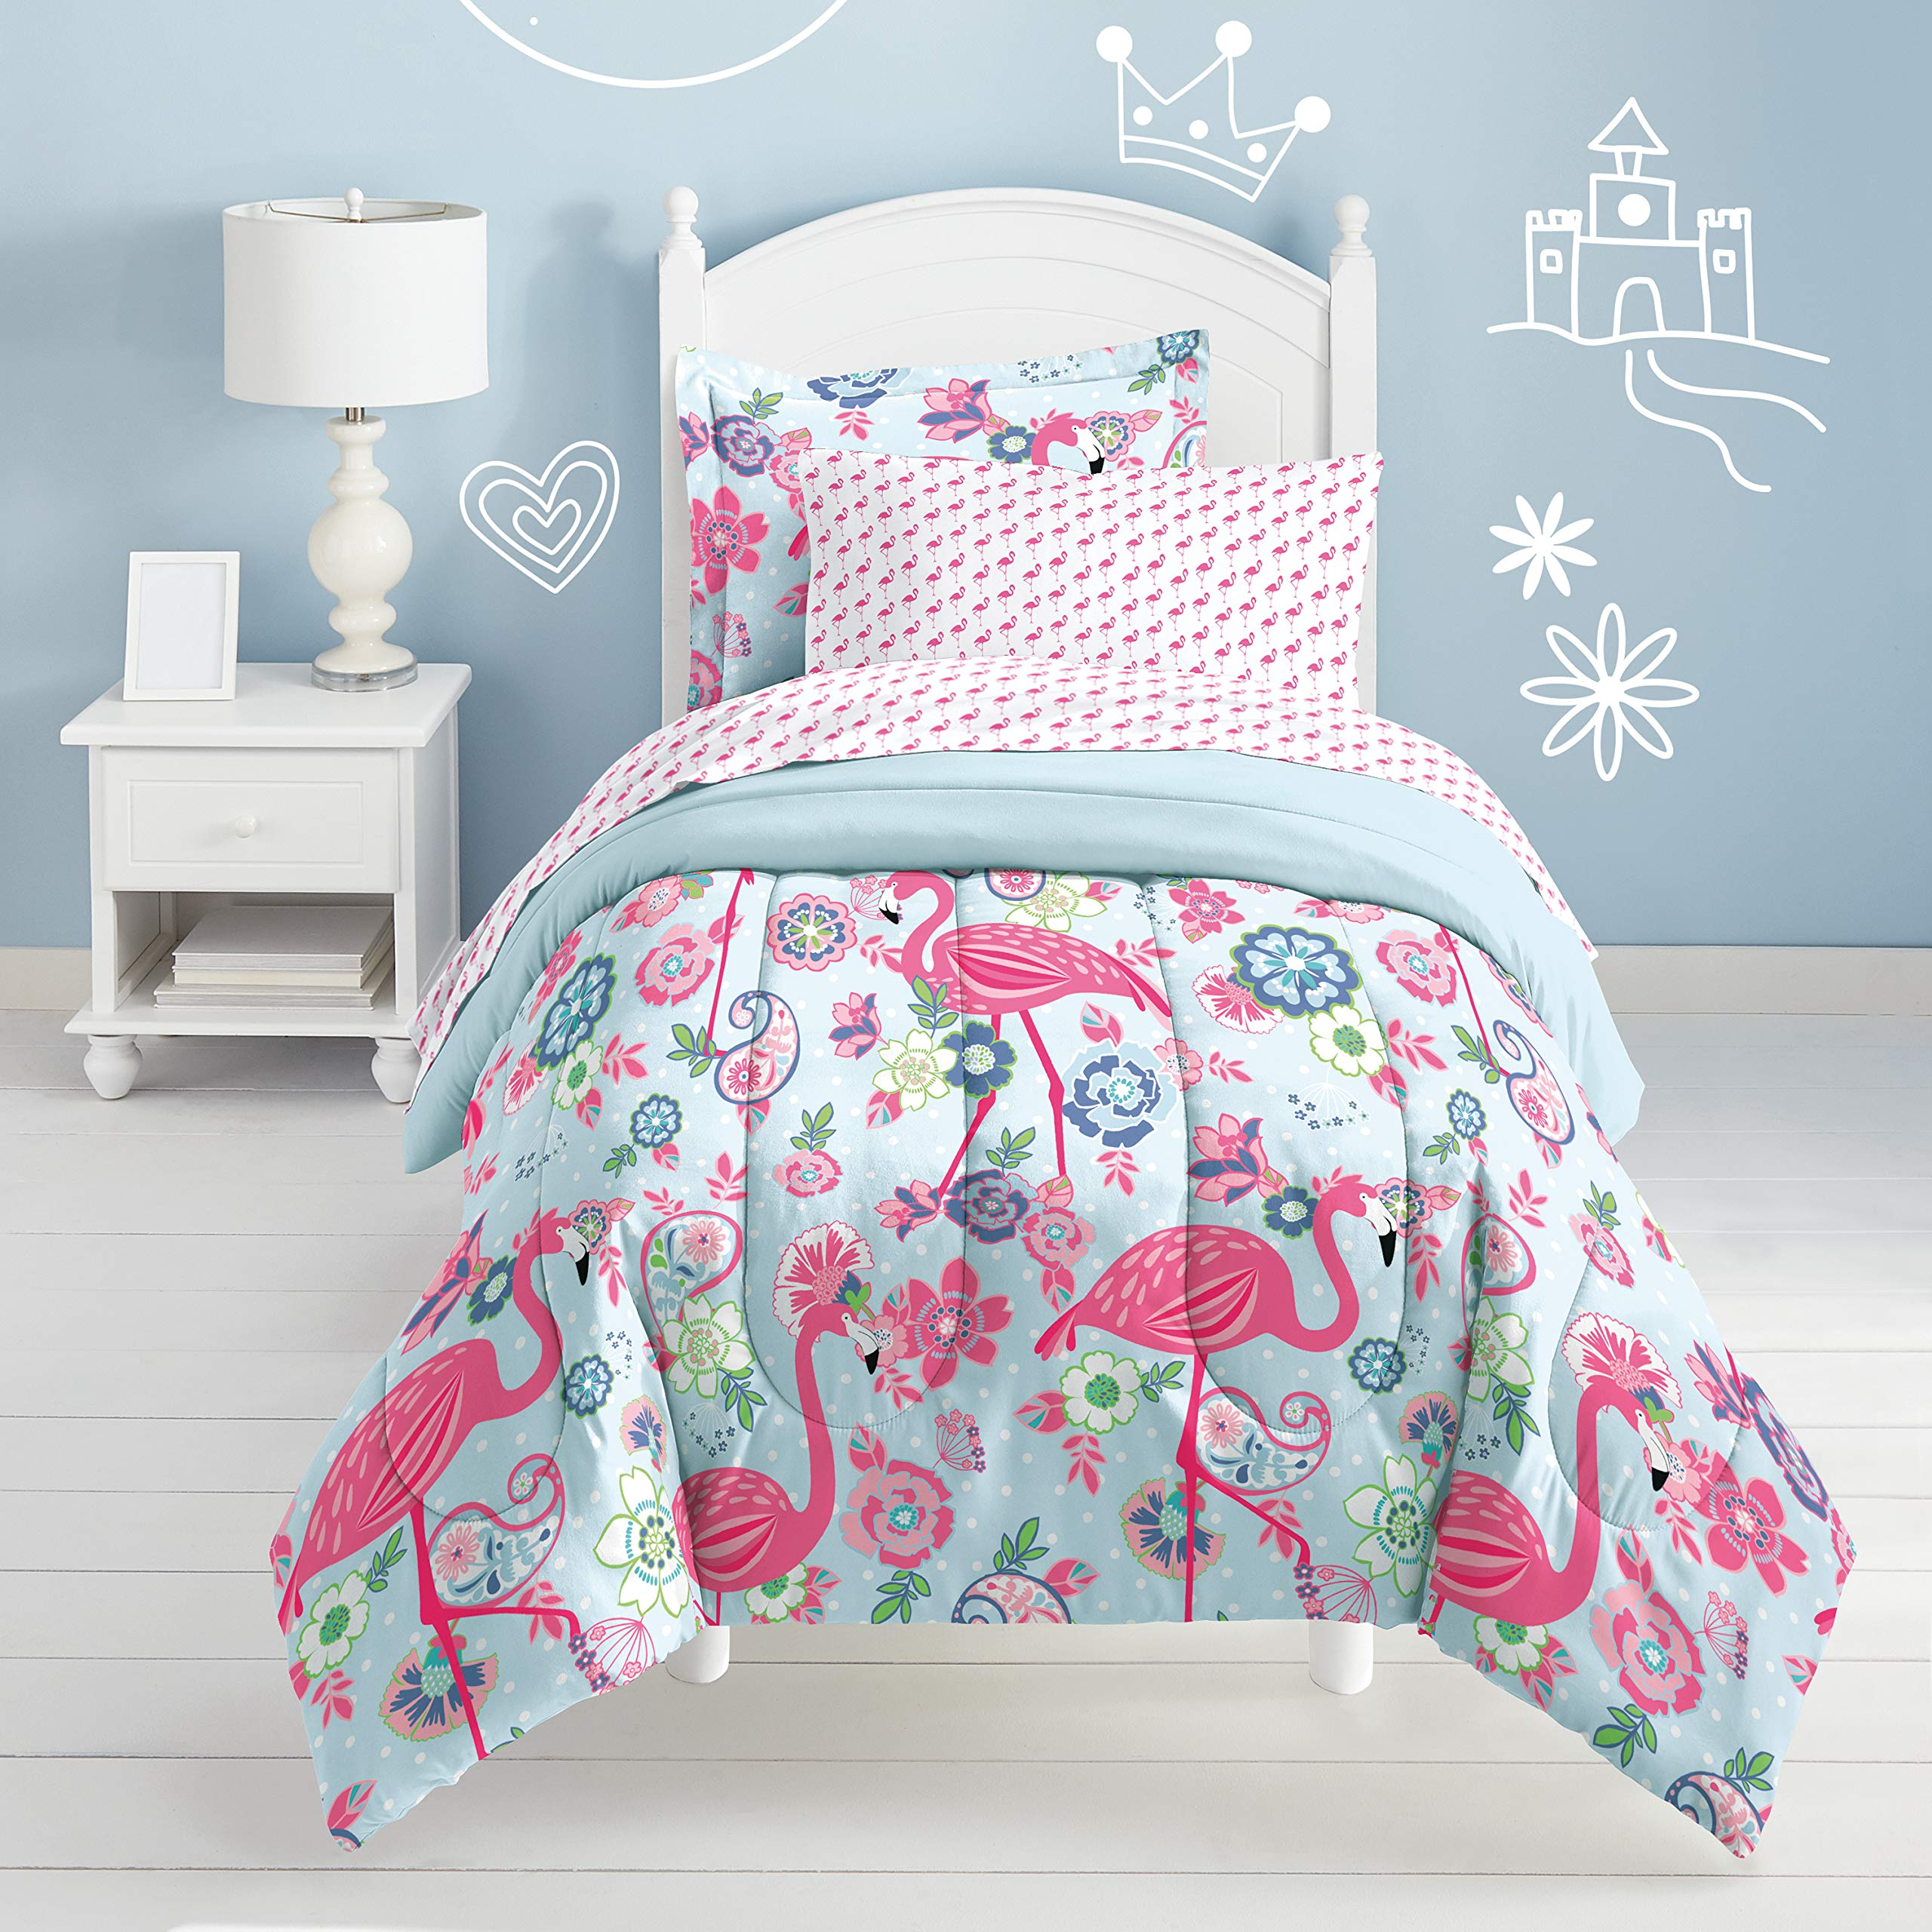 Dream Factory Flamingo Comforter Set, Pink, Twin by Dream Factory (Image #3)